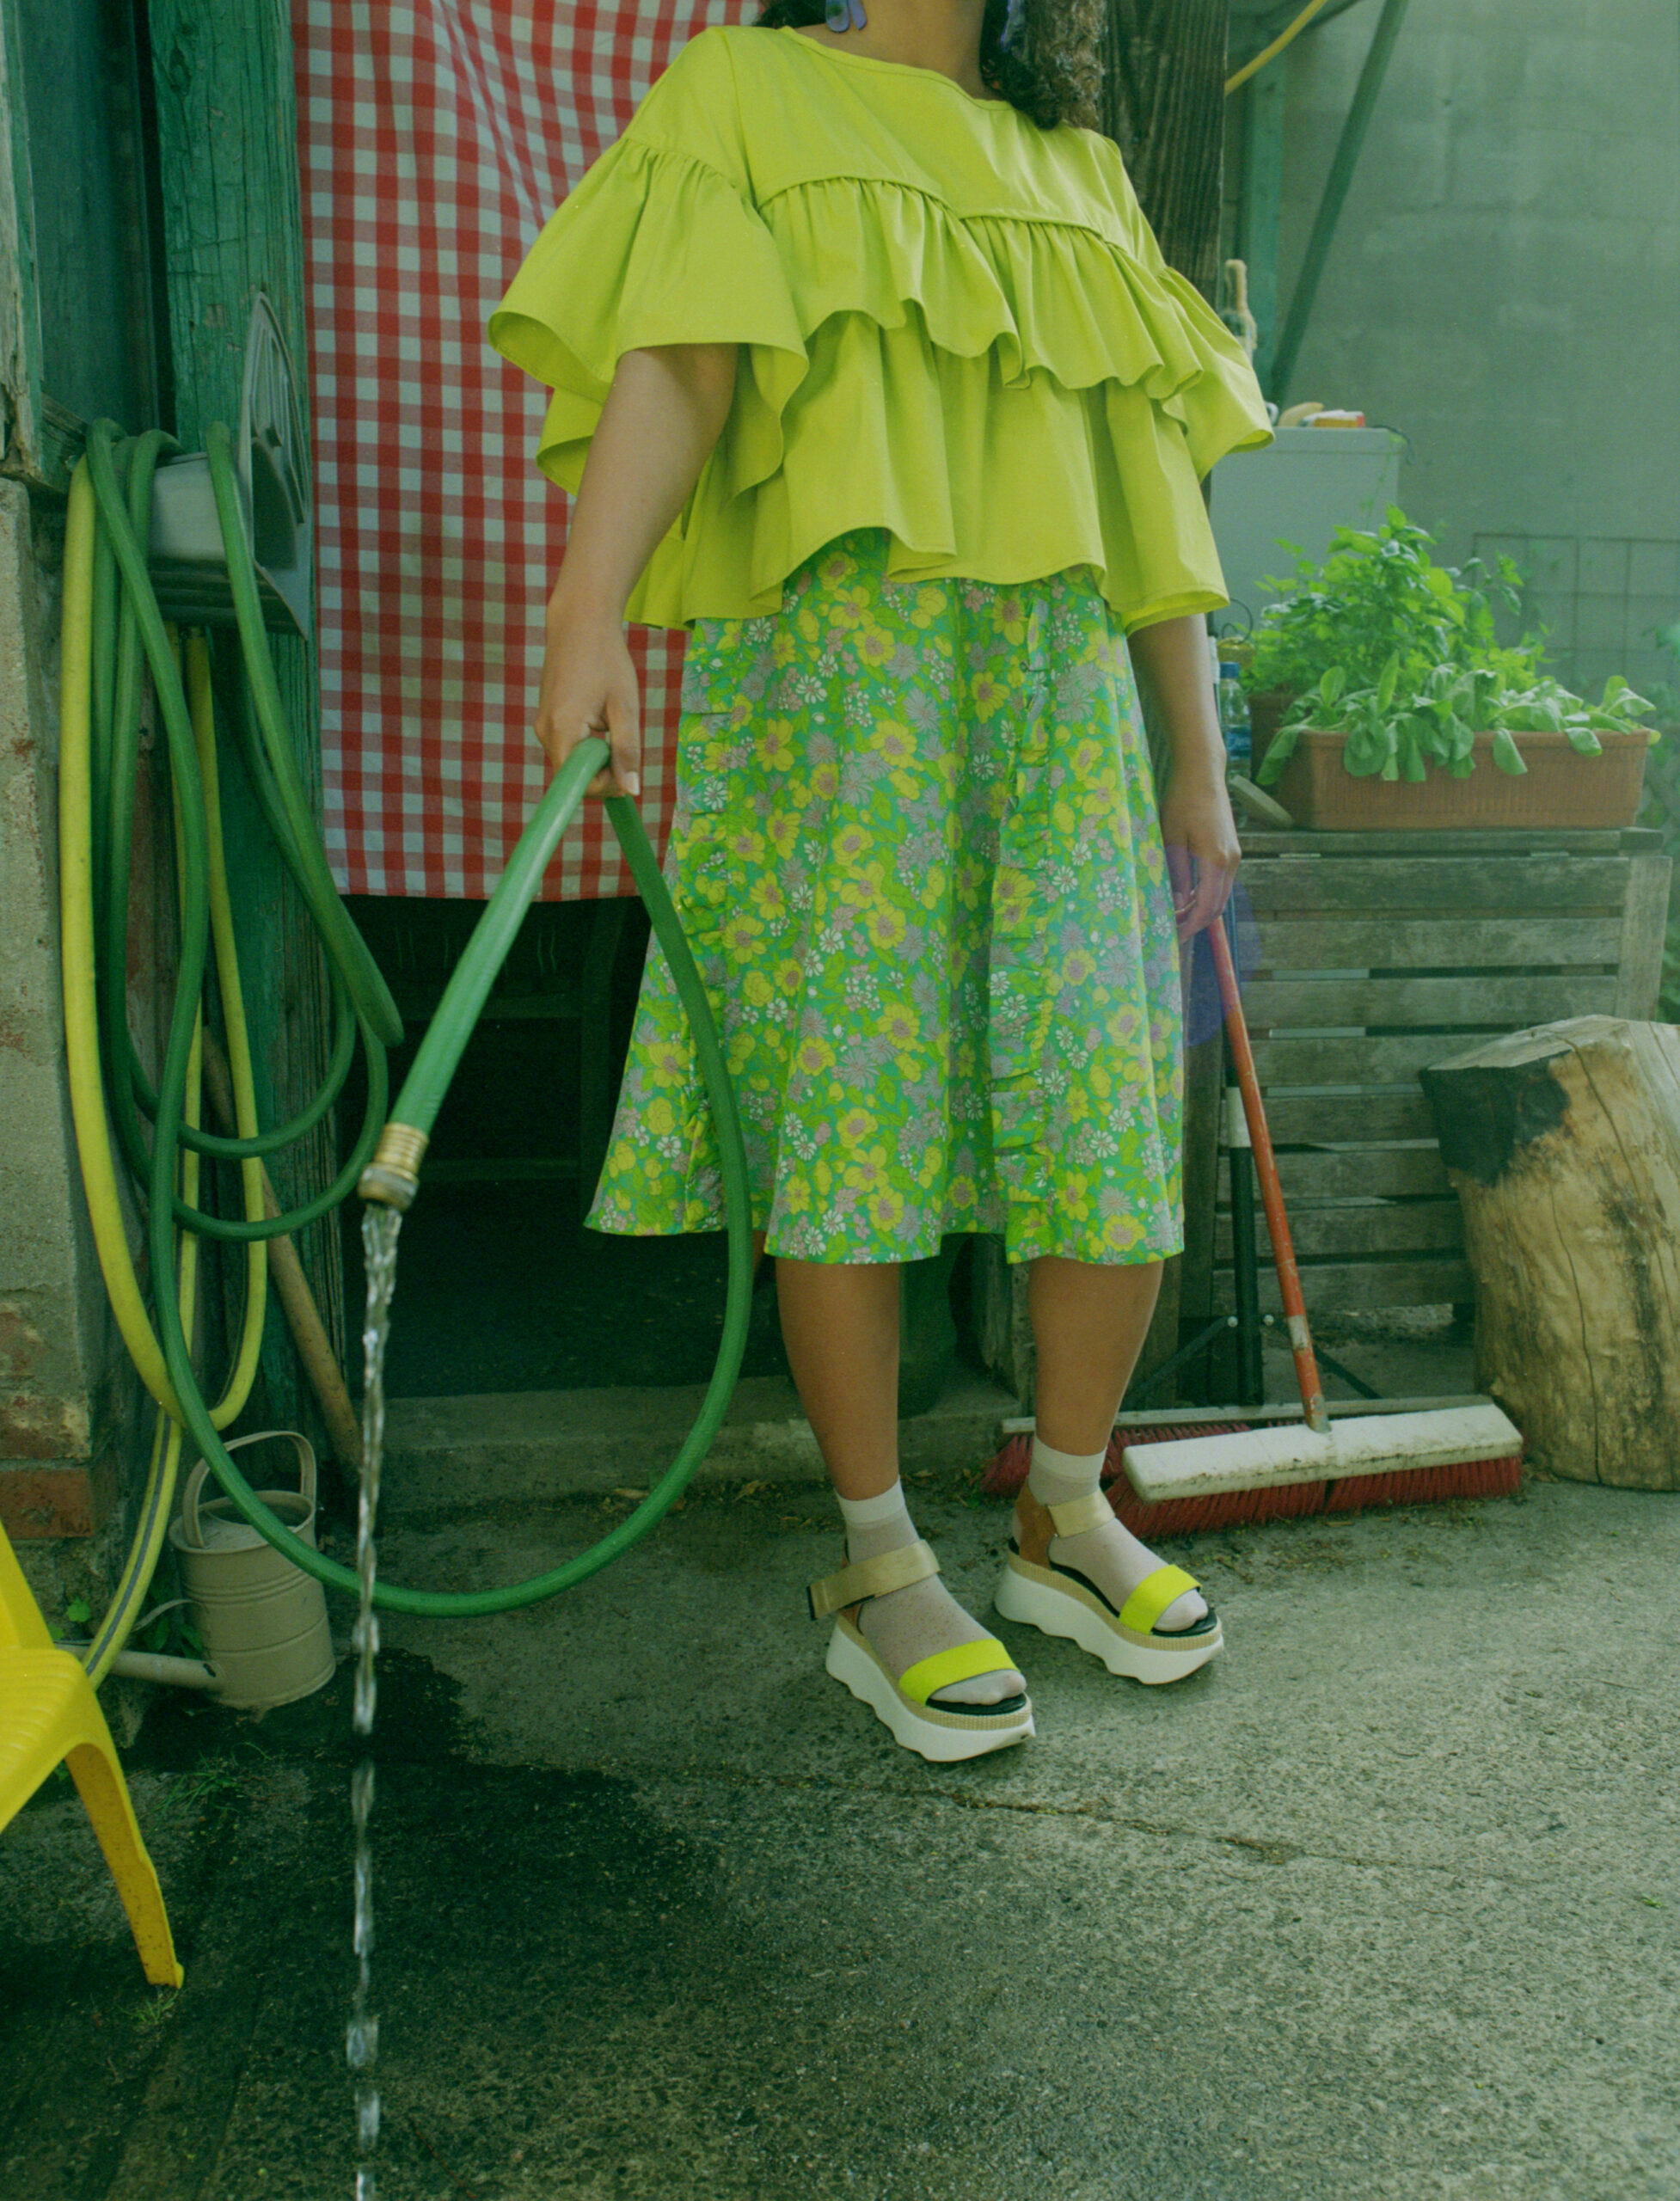 Green flower dress with hose.